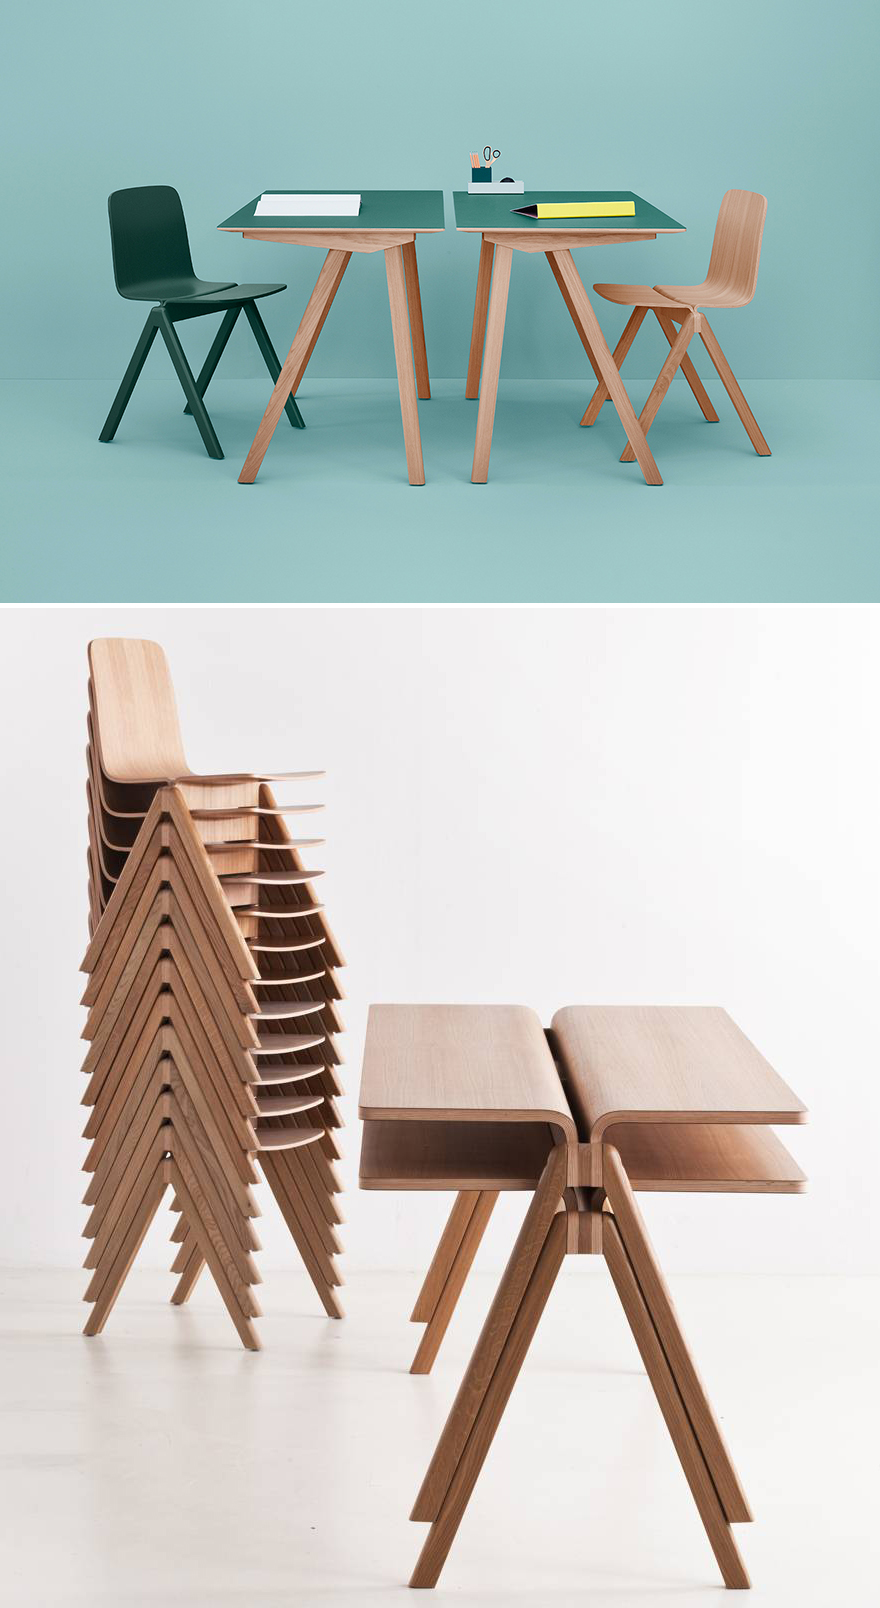 Superieur You Donu0027t Think Of Big Name Designers Doing Furniture For Schools, But  Danish Furniture Brand Hay Scored Ronan And Erwan Bouroullec To Do Their  Line For The ...